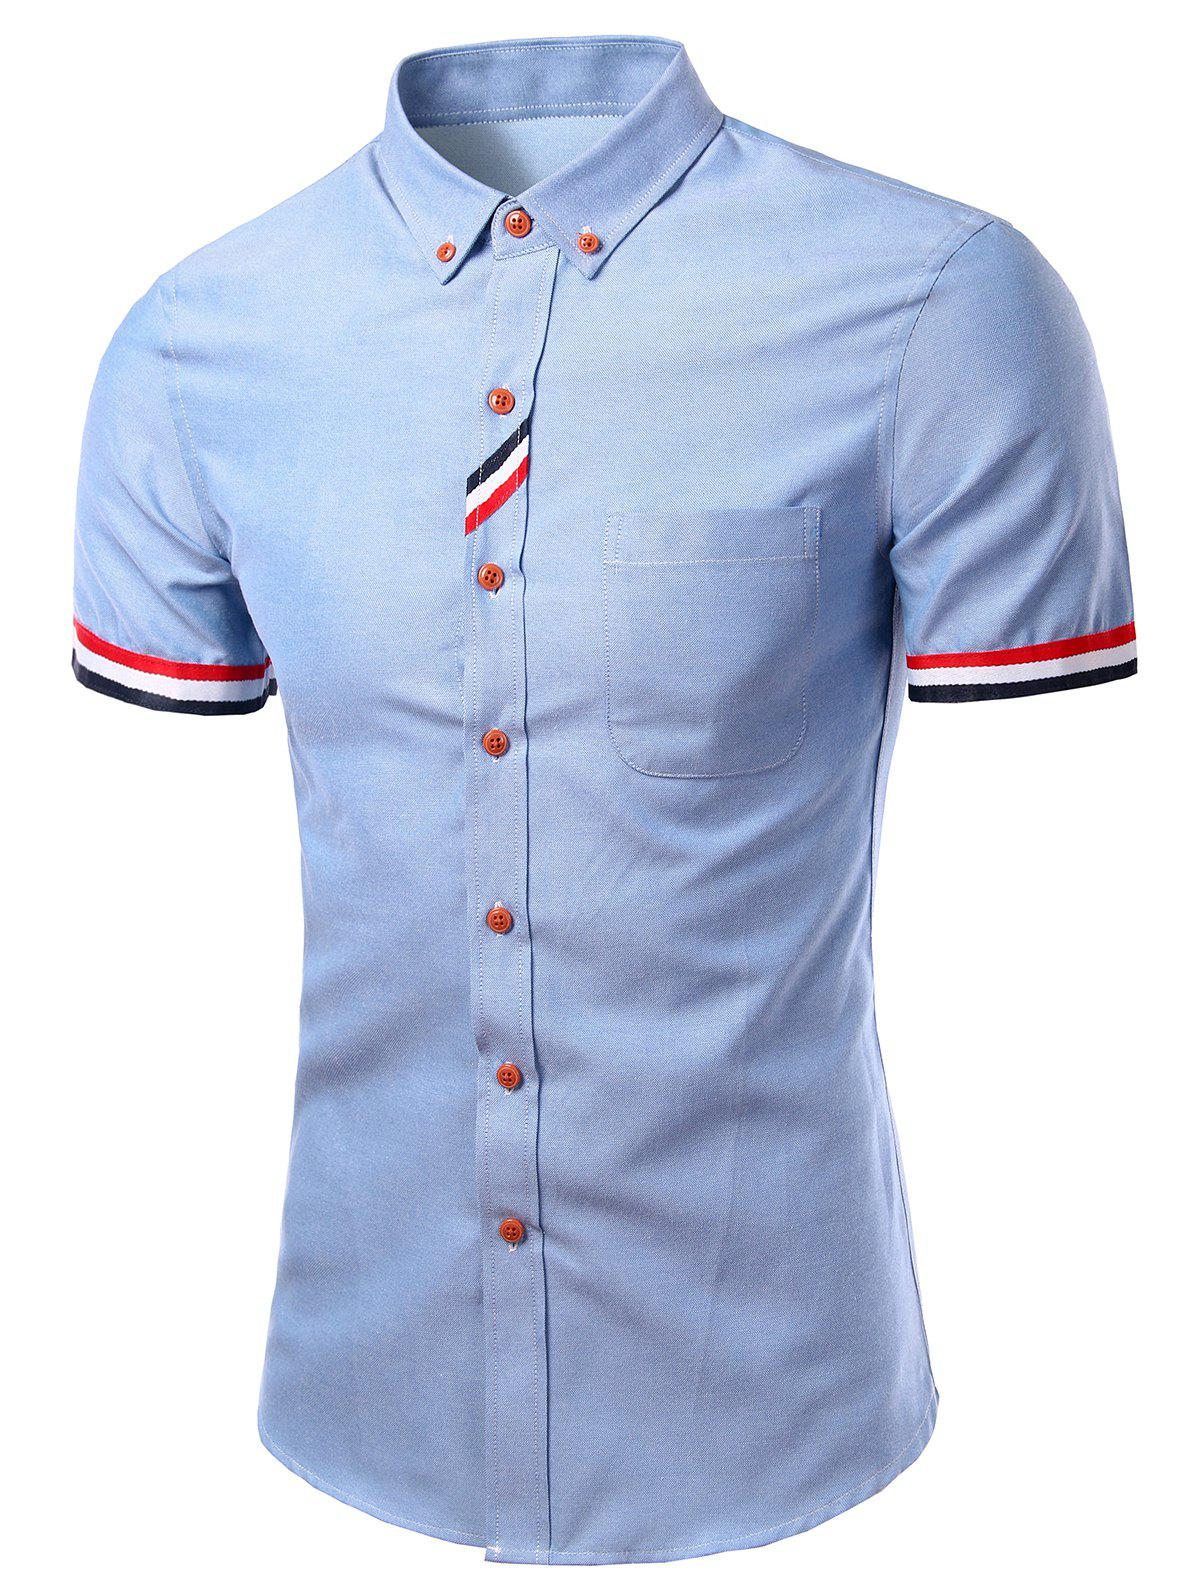 Stylish Turn-Down Collar Striped Short Sleeve Button-Down Shirt For Men